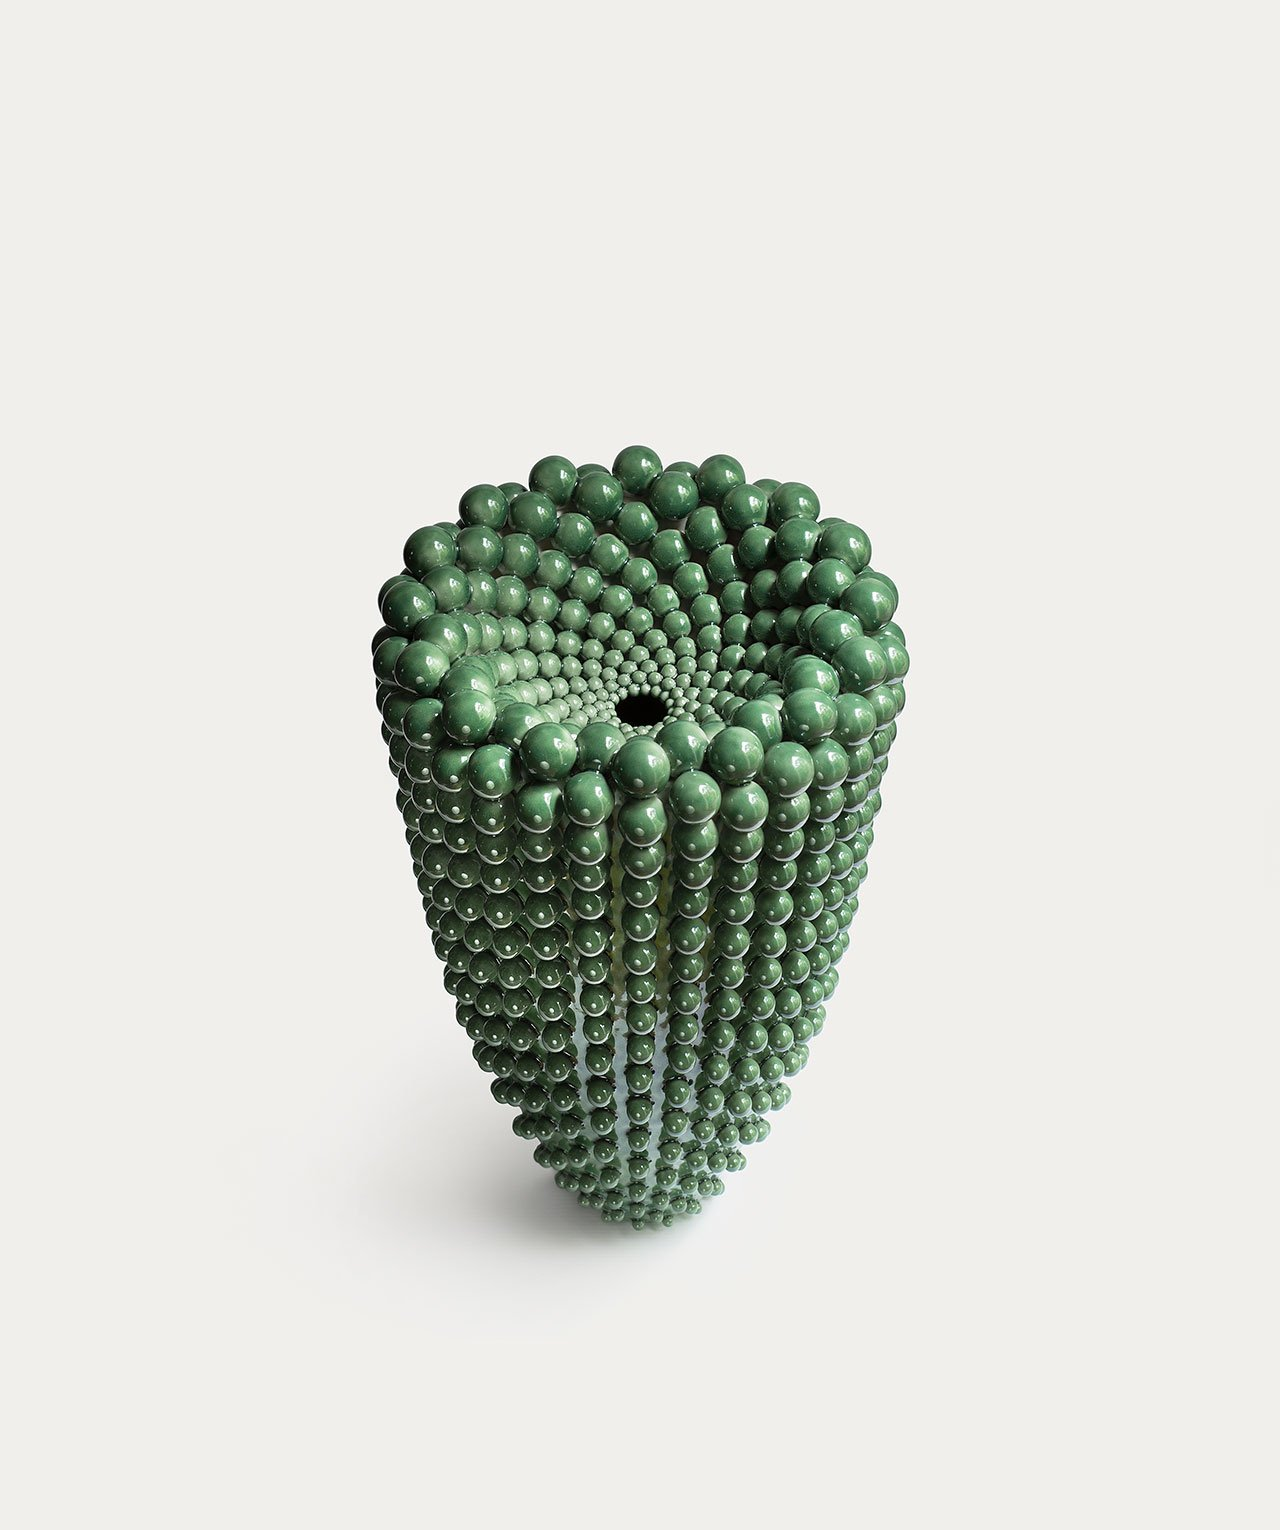 Nicolette Johnson, JADE CONCAVE VASE, 2019.Courtesy of the artist.